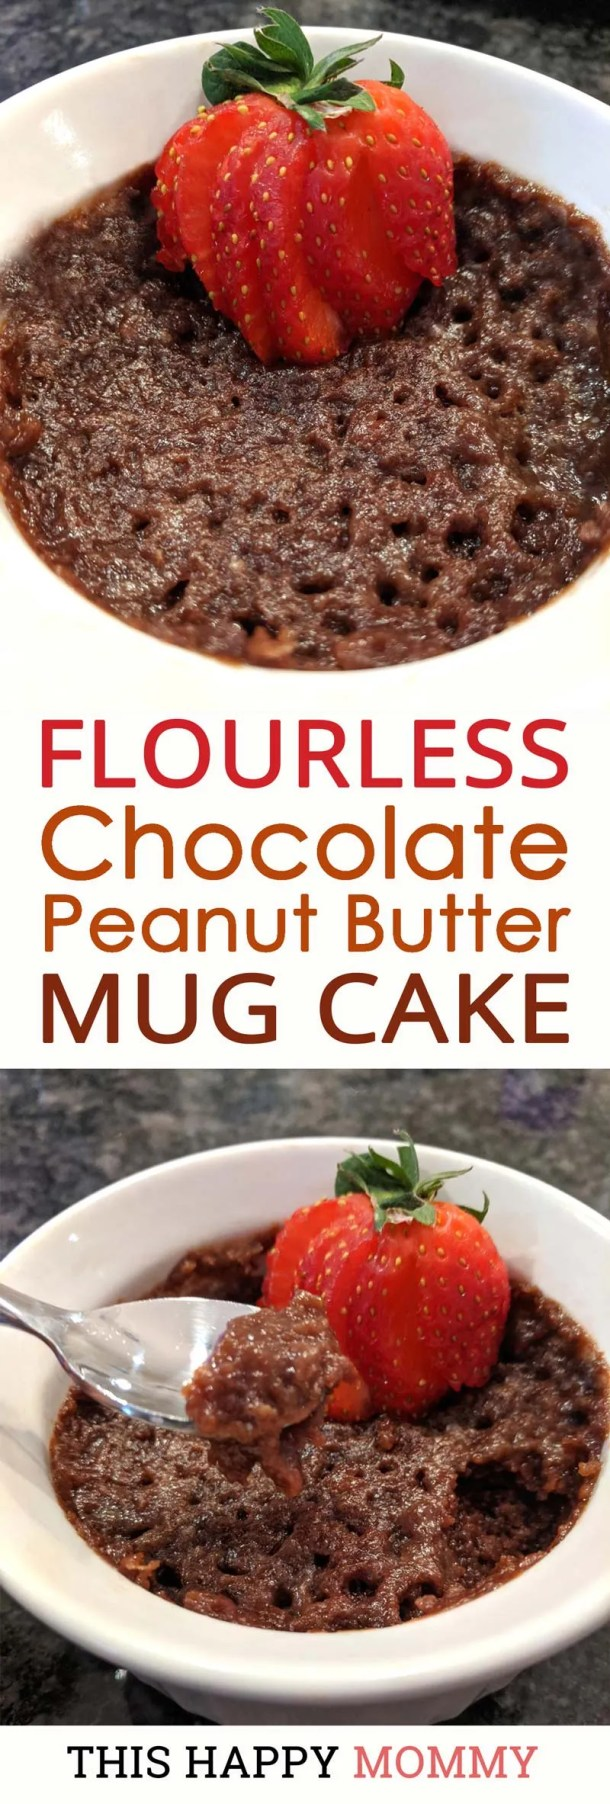 Indulge in a tasty 5 minutes dessert! Made without butter, cream, or oil, Flourless Chocolate Peanut Butter Mug Cake is a rich, decadently chocolatey single-serving cake. Yummy! | thishappymommy.com